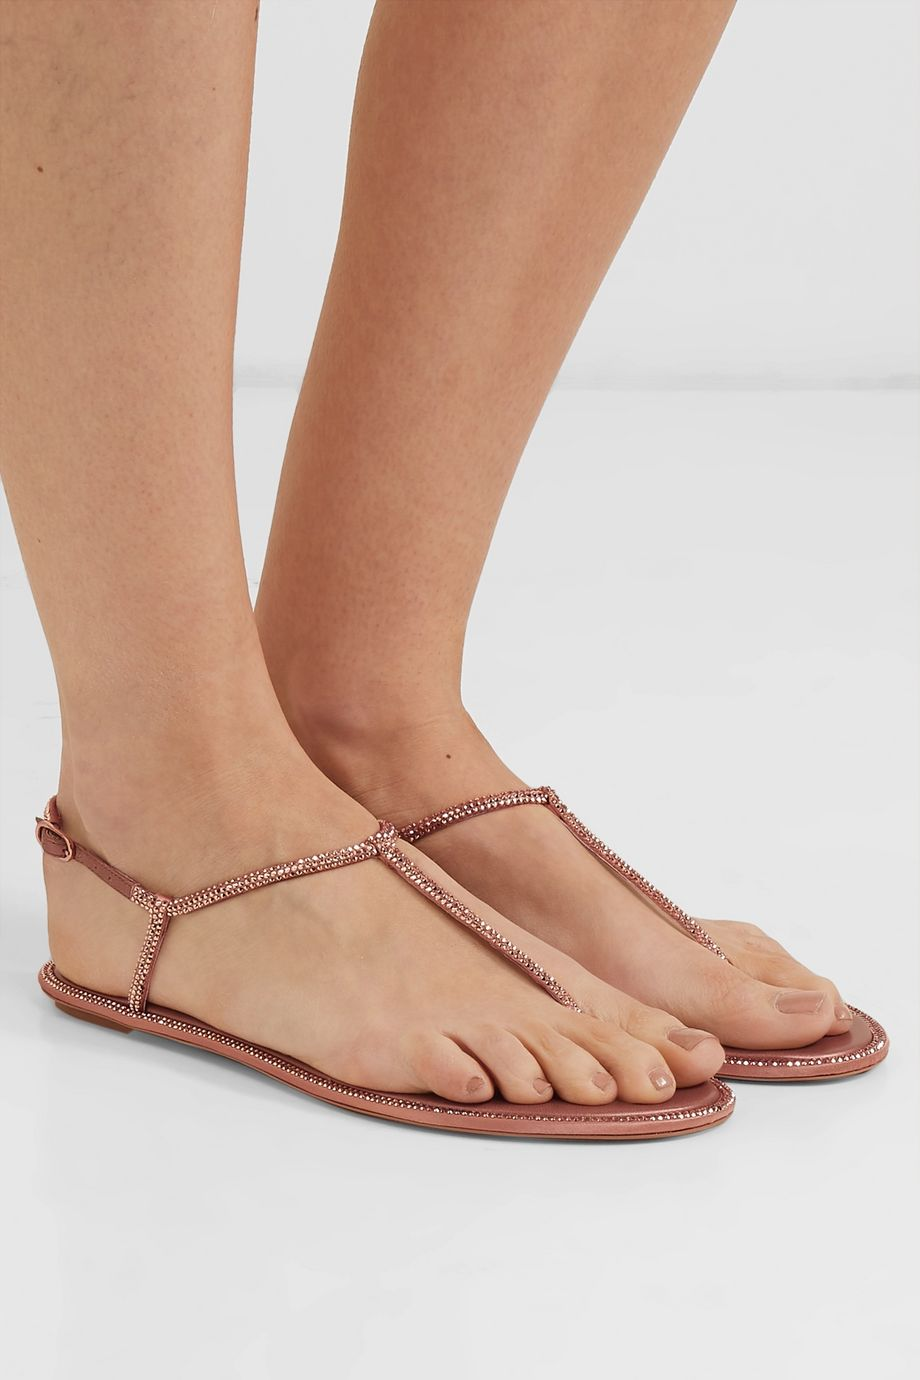 René Caovilla Diana crystal-embellished leather and satin sandals